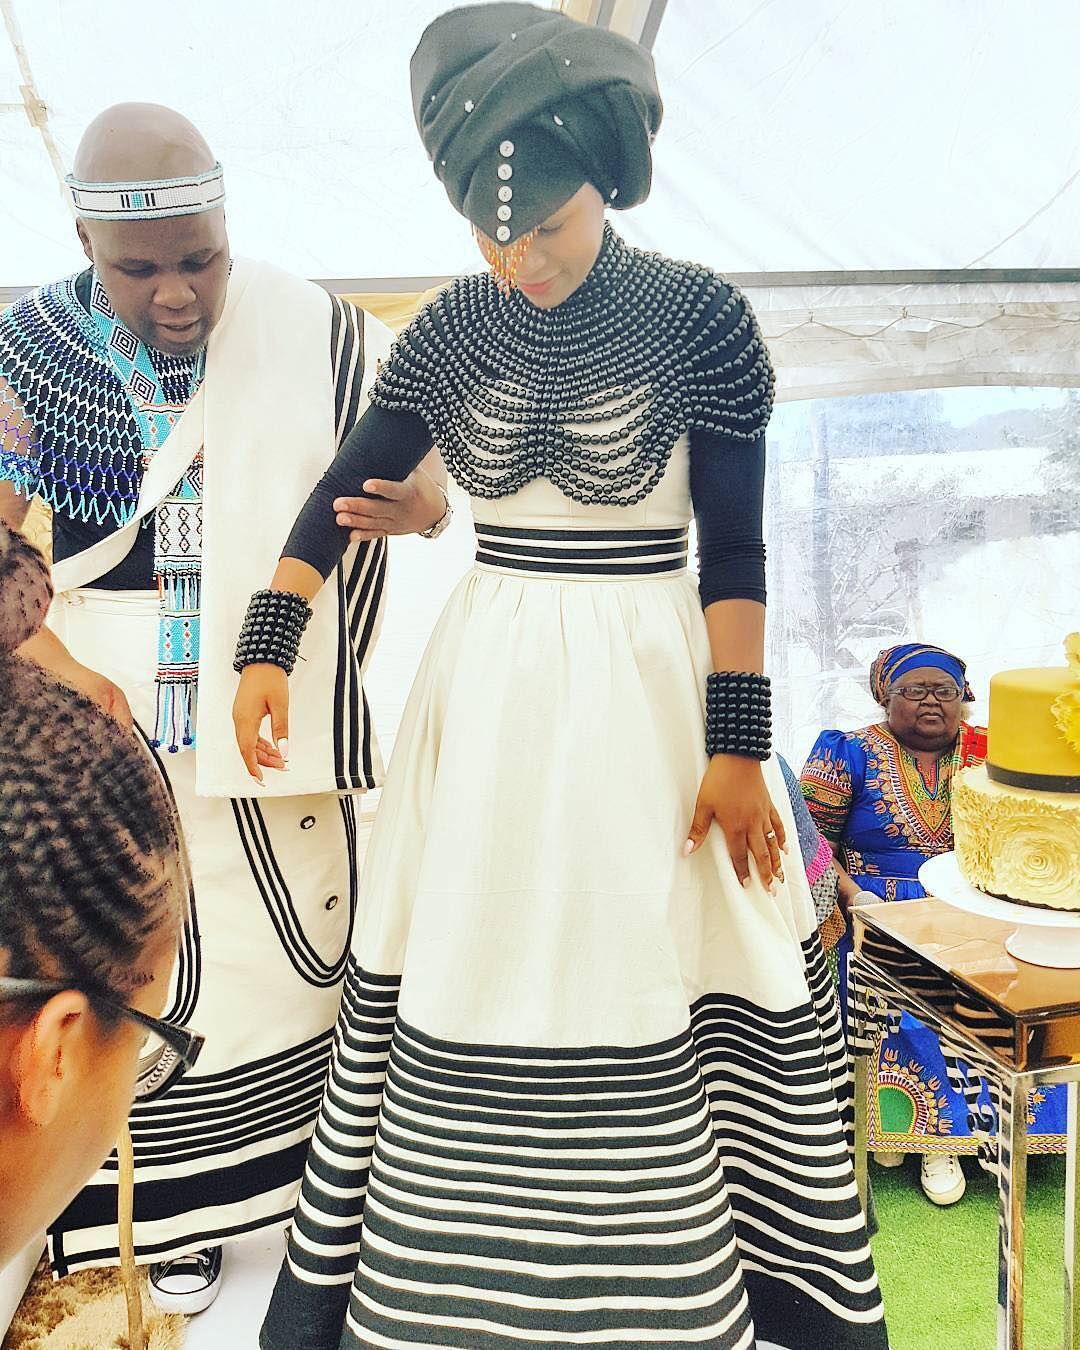 xhosa wedding dress wedding dress amp decore ideas